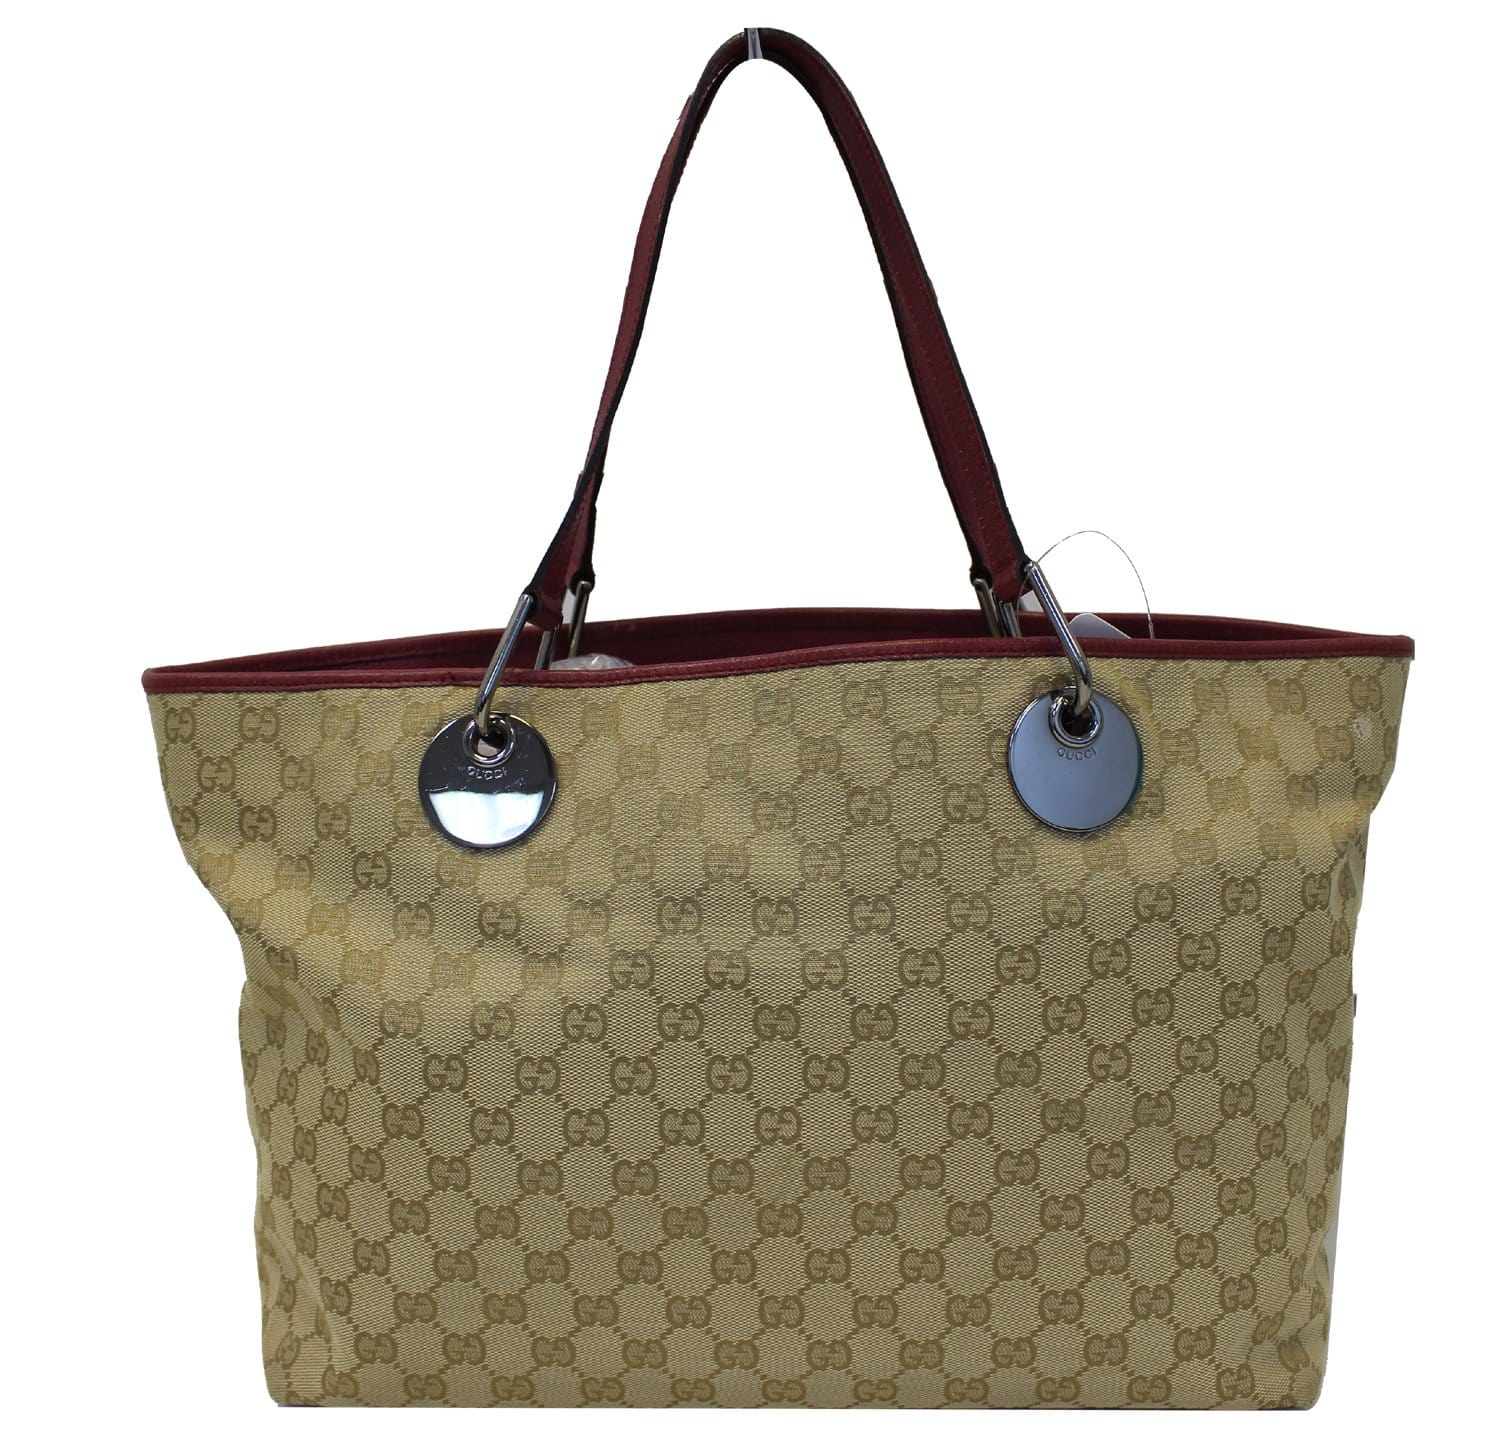 dbee1357e84 Authentic GUCCI Eclipse Beige Red GG Canvas Leather Tote Bag TT1830